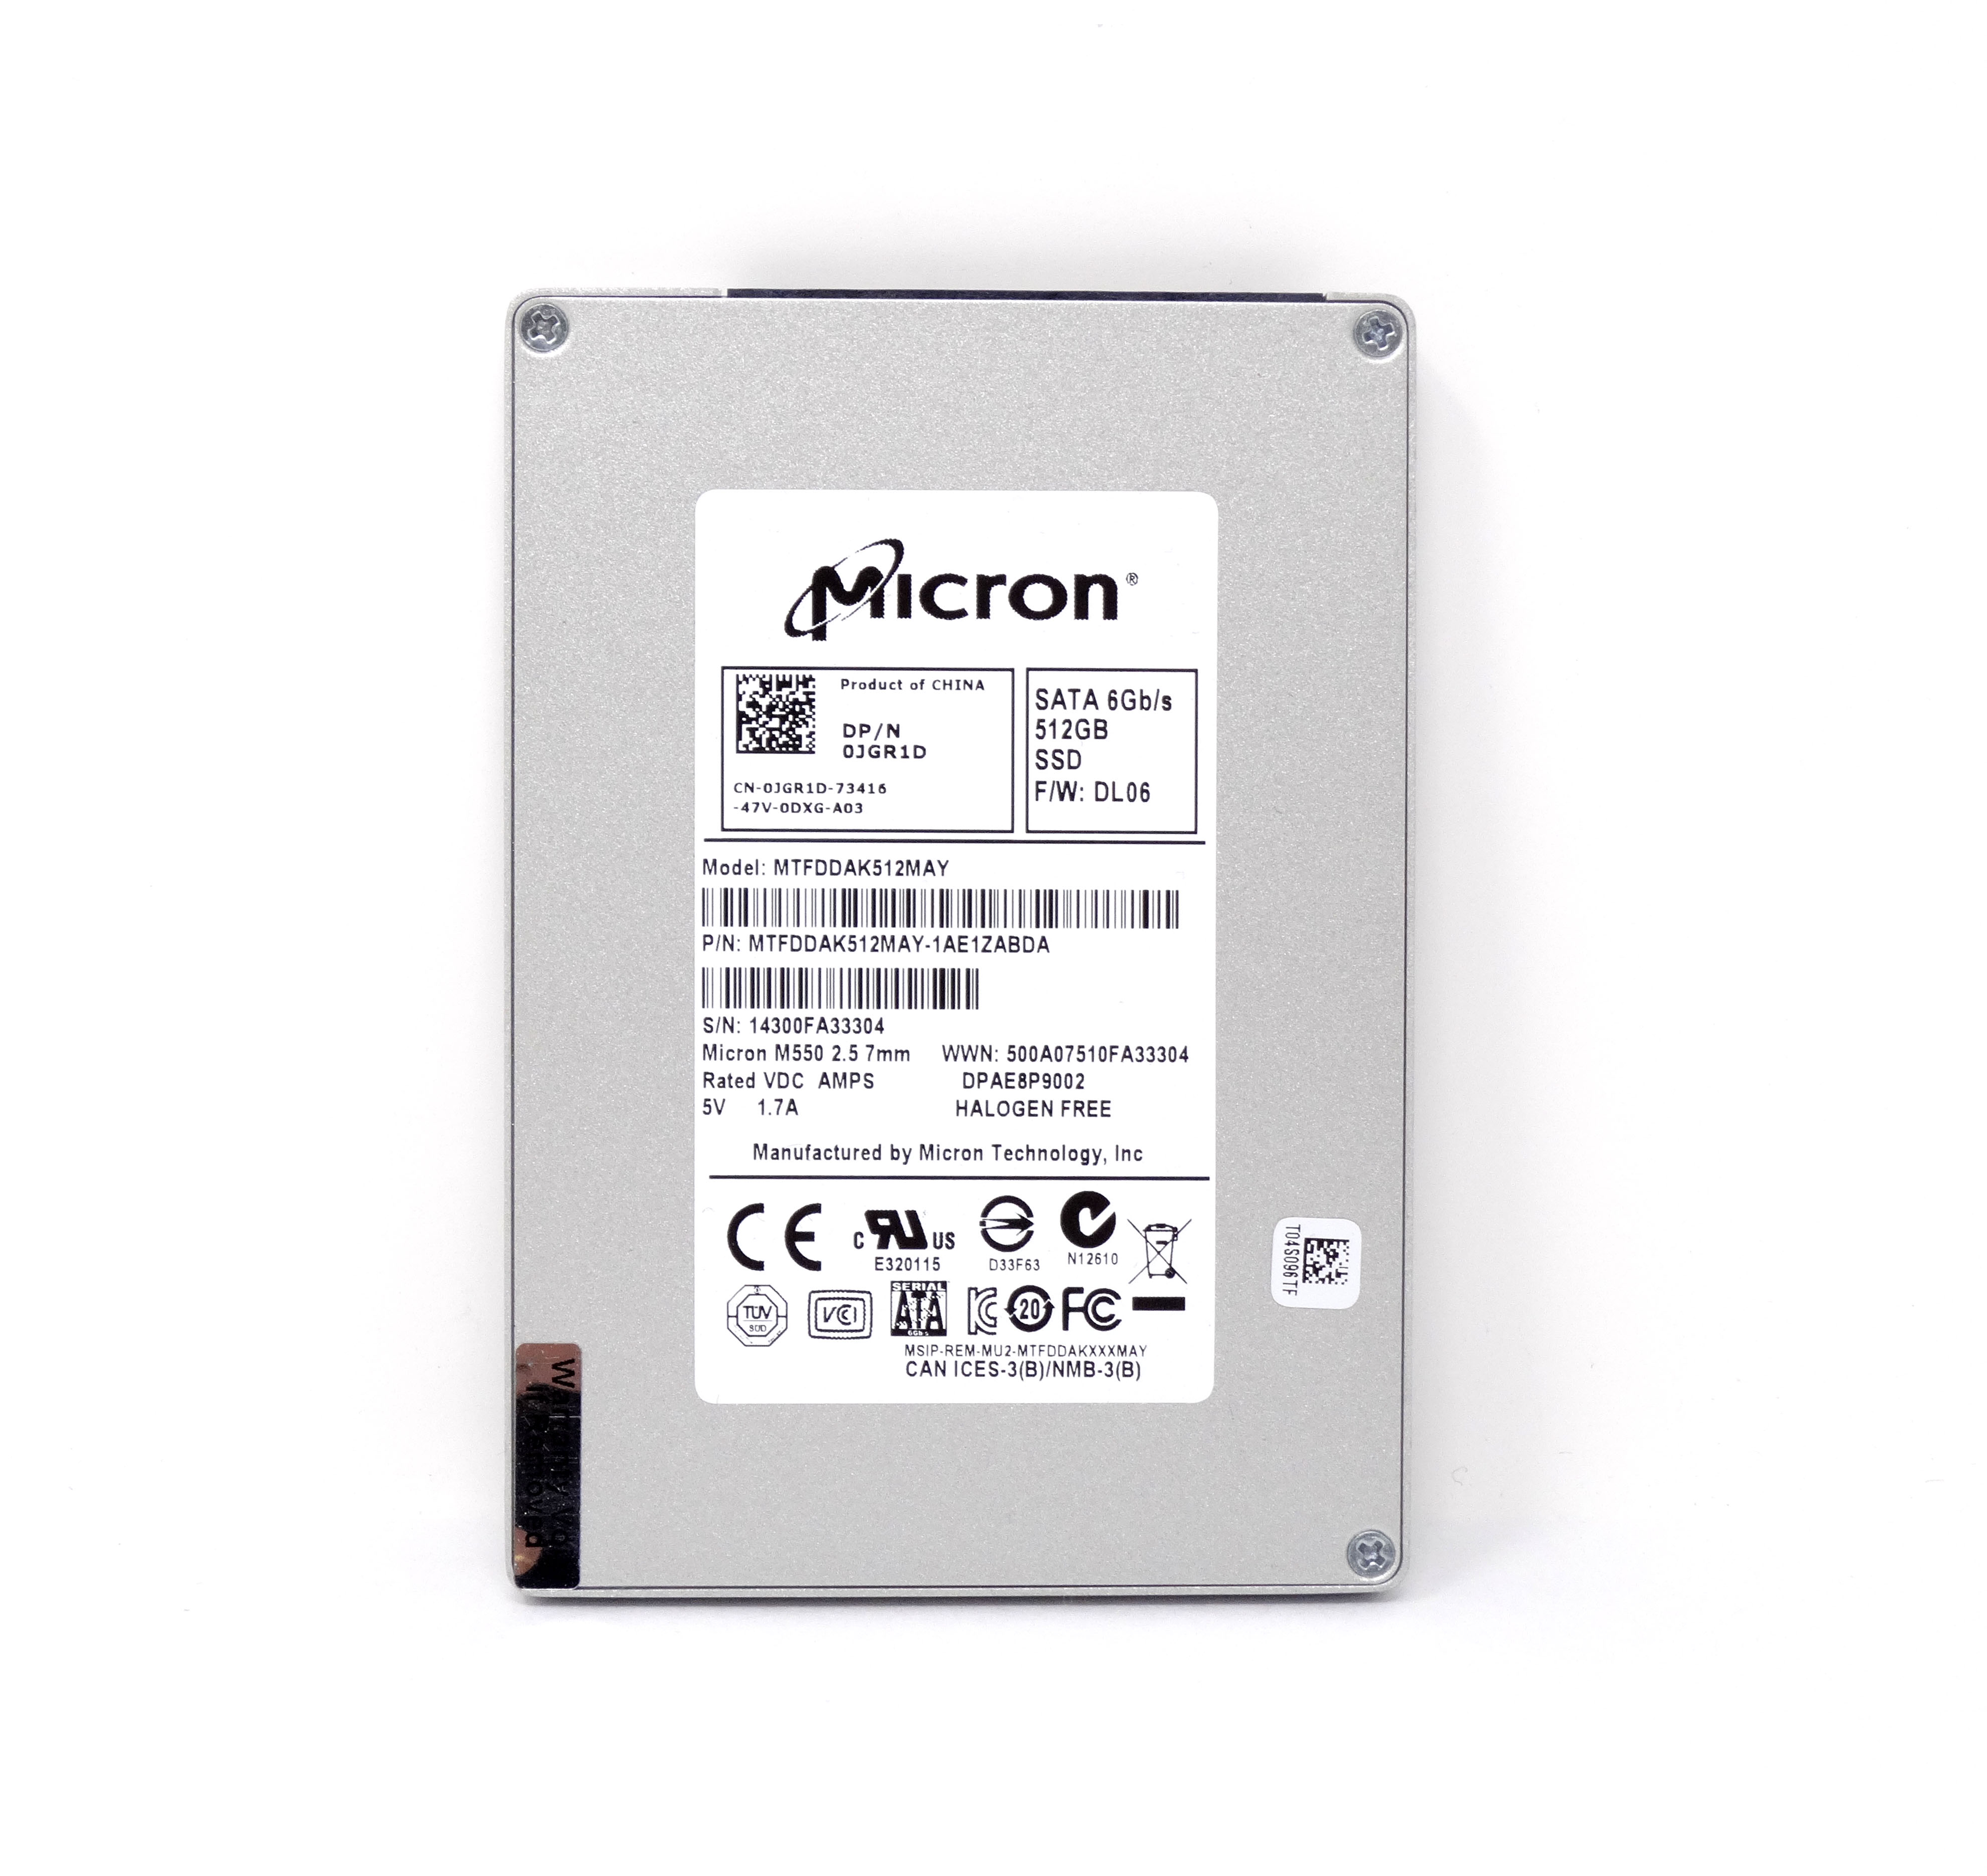 Dell Micron M550 512Gb 6Gbps SATA 2.5'' SSD Solid State Drive (JGR1D)